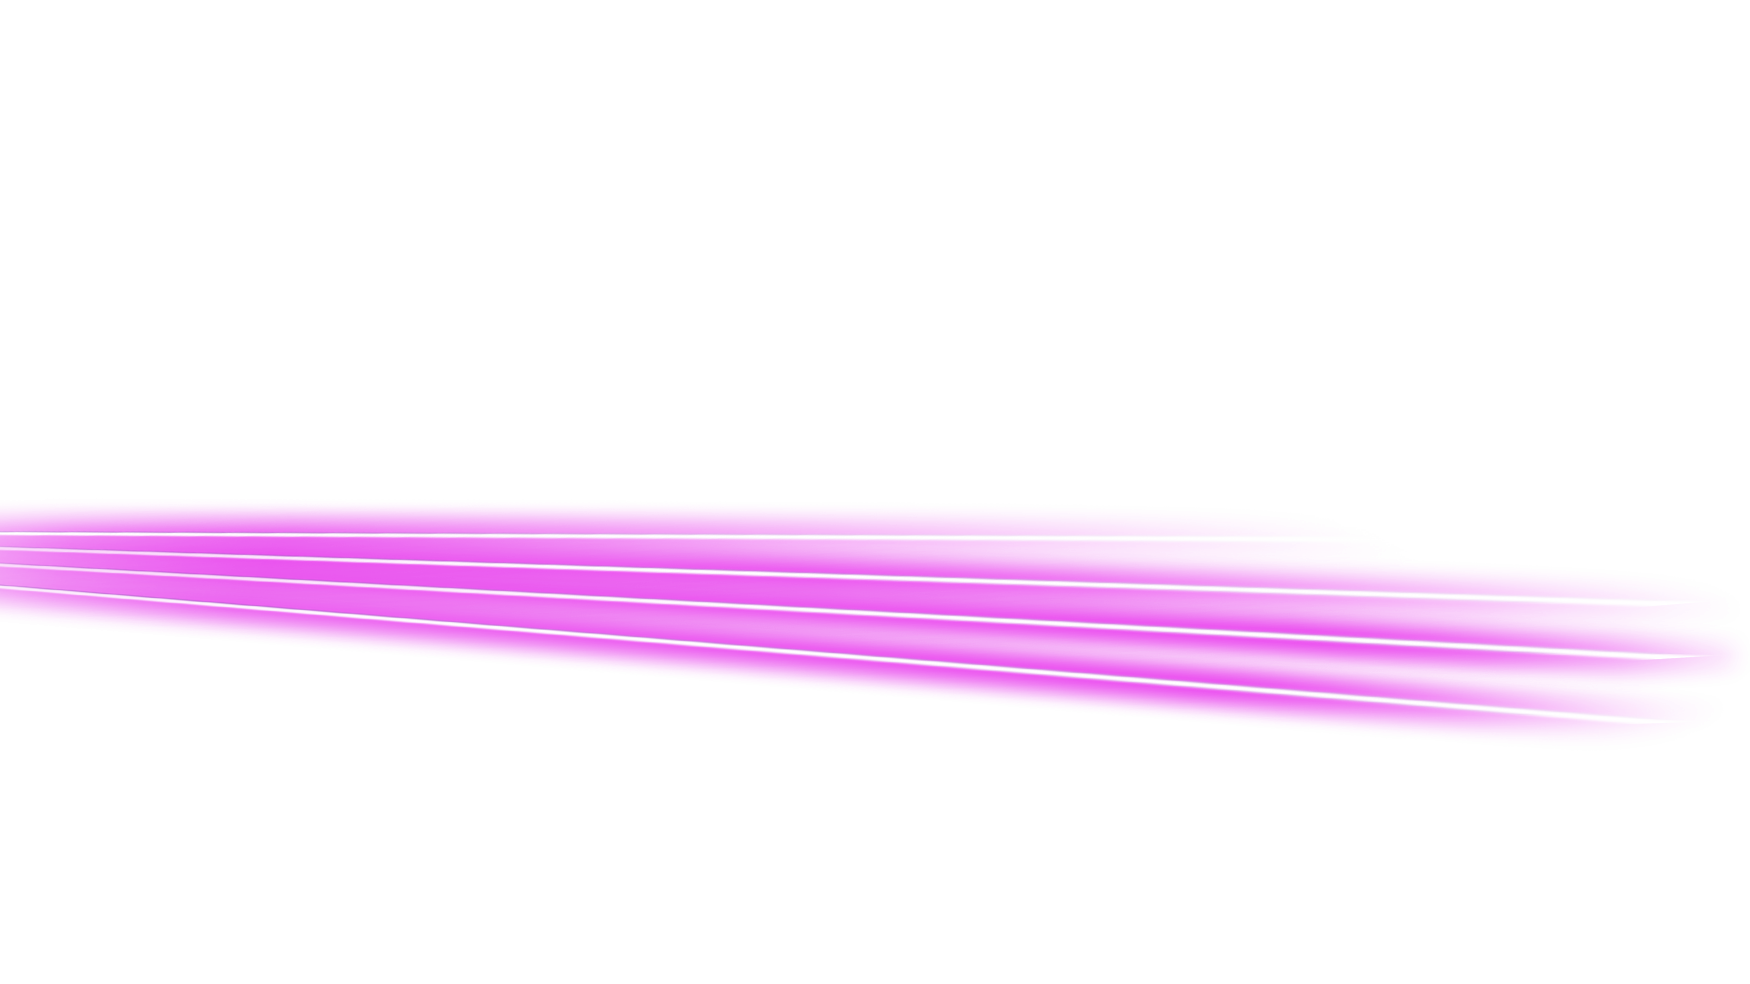 Neon light png. Line image